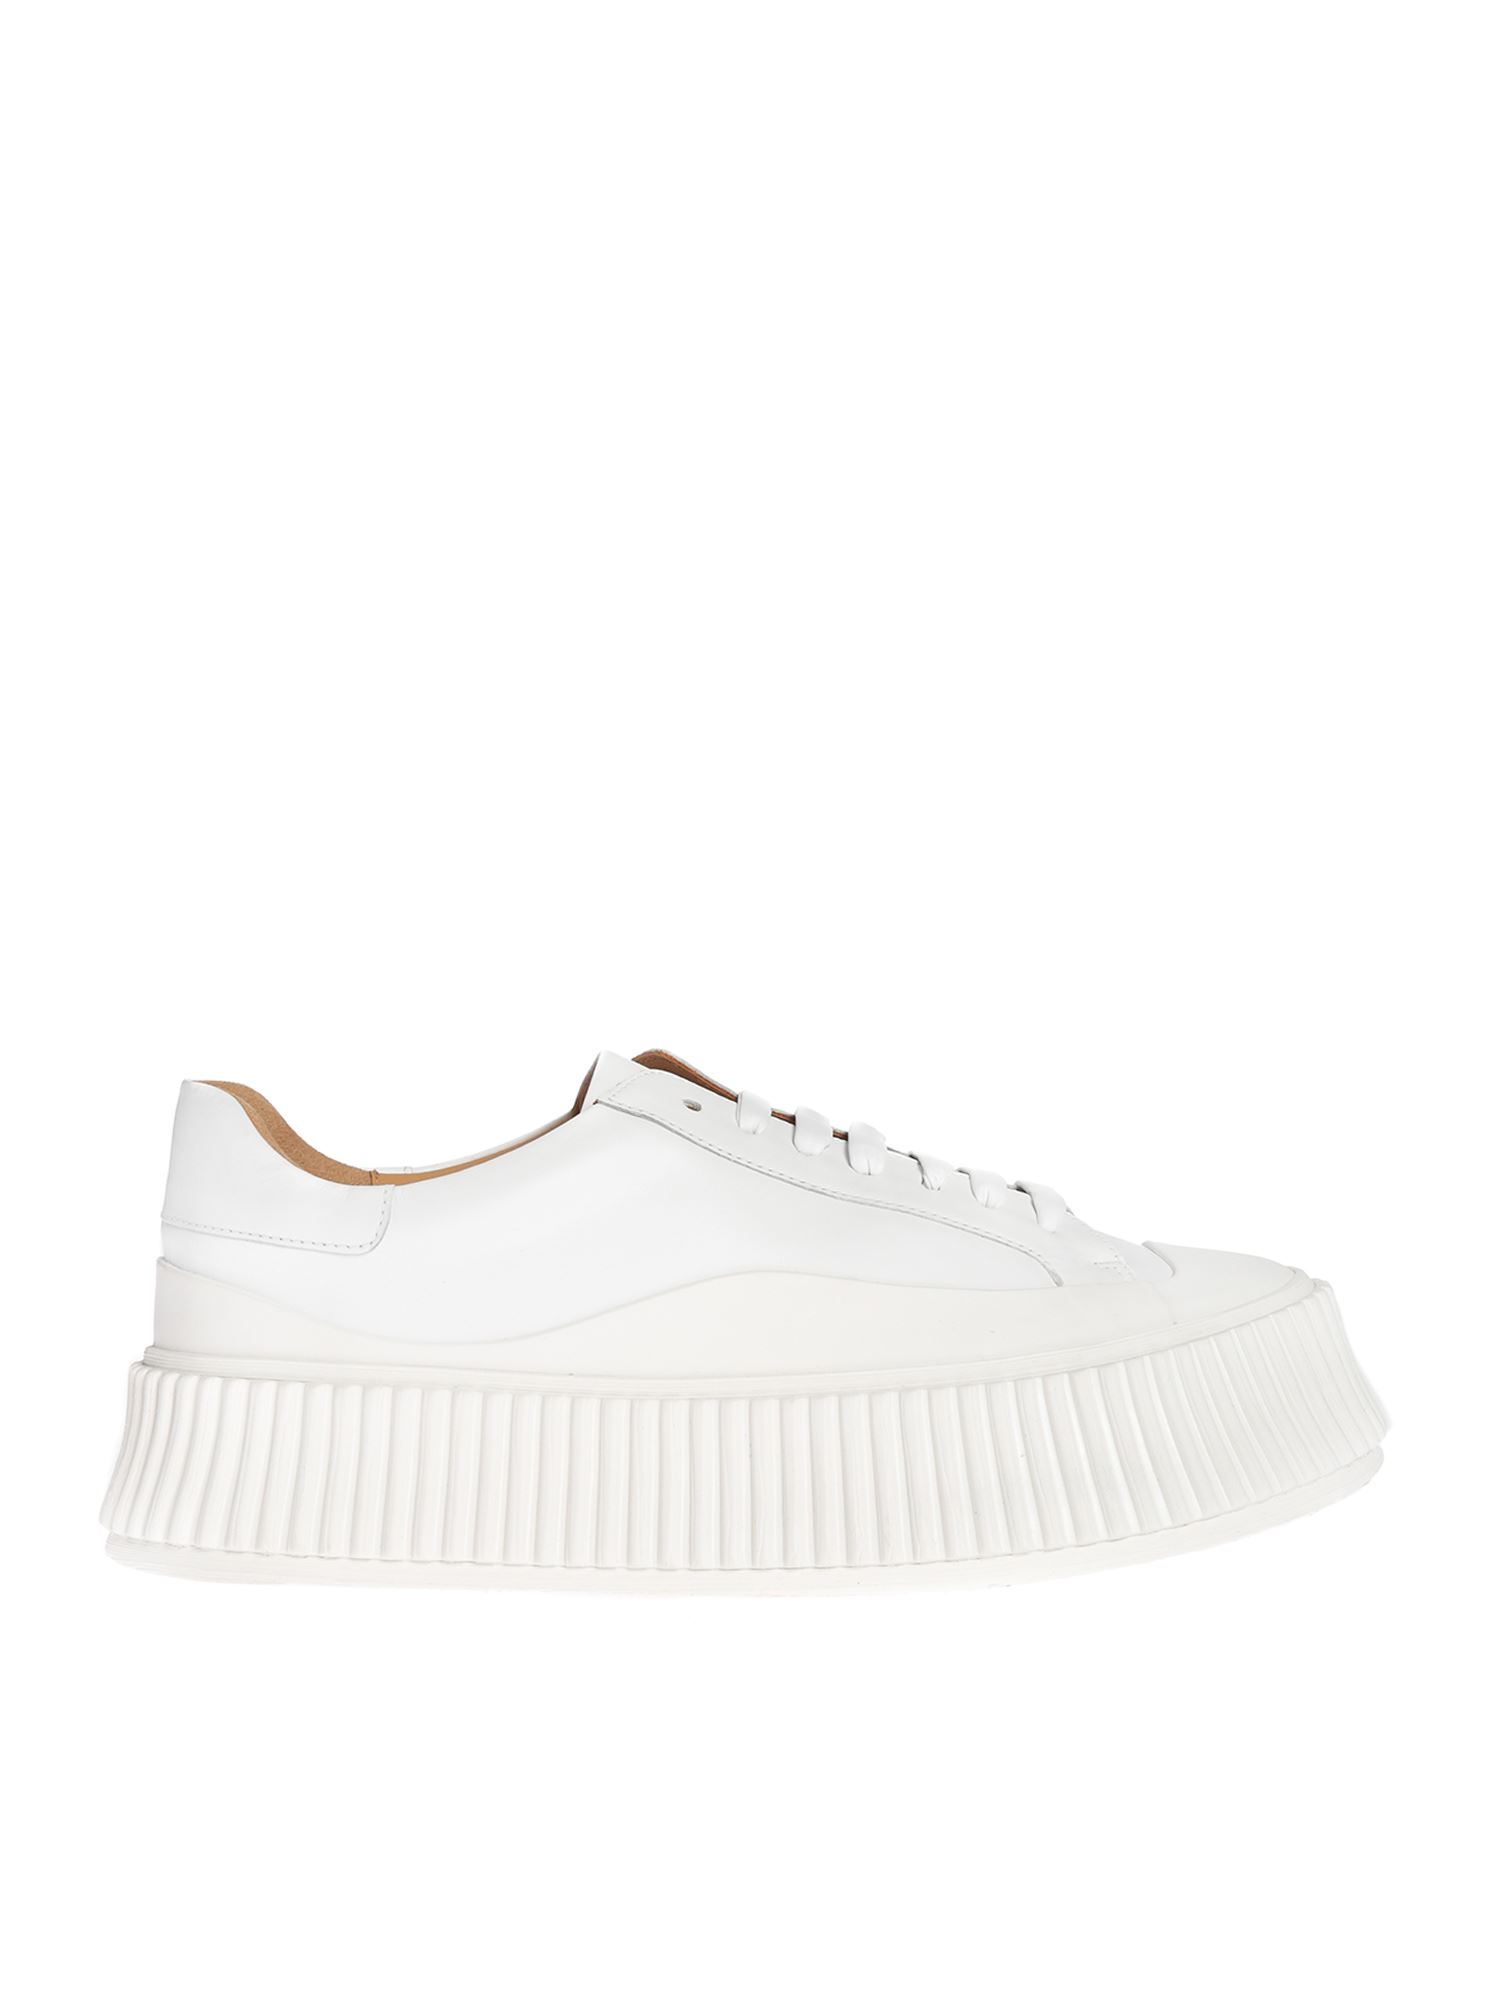 Jil Sander VULCANIZED RUBBER SOLE SNEAKERS IN WHITE